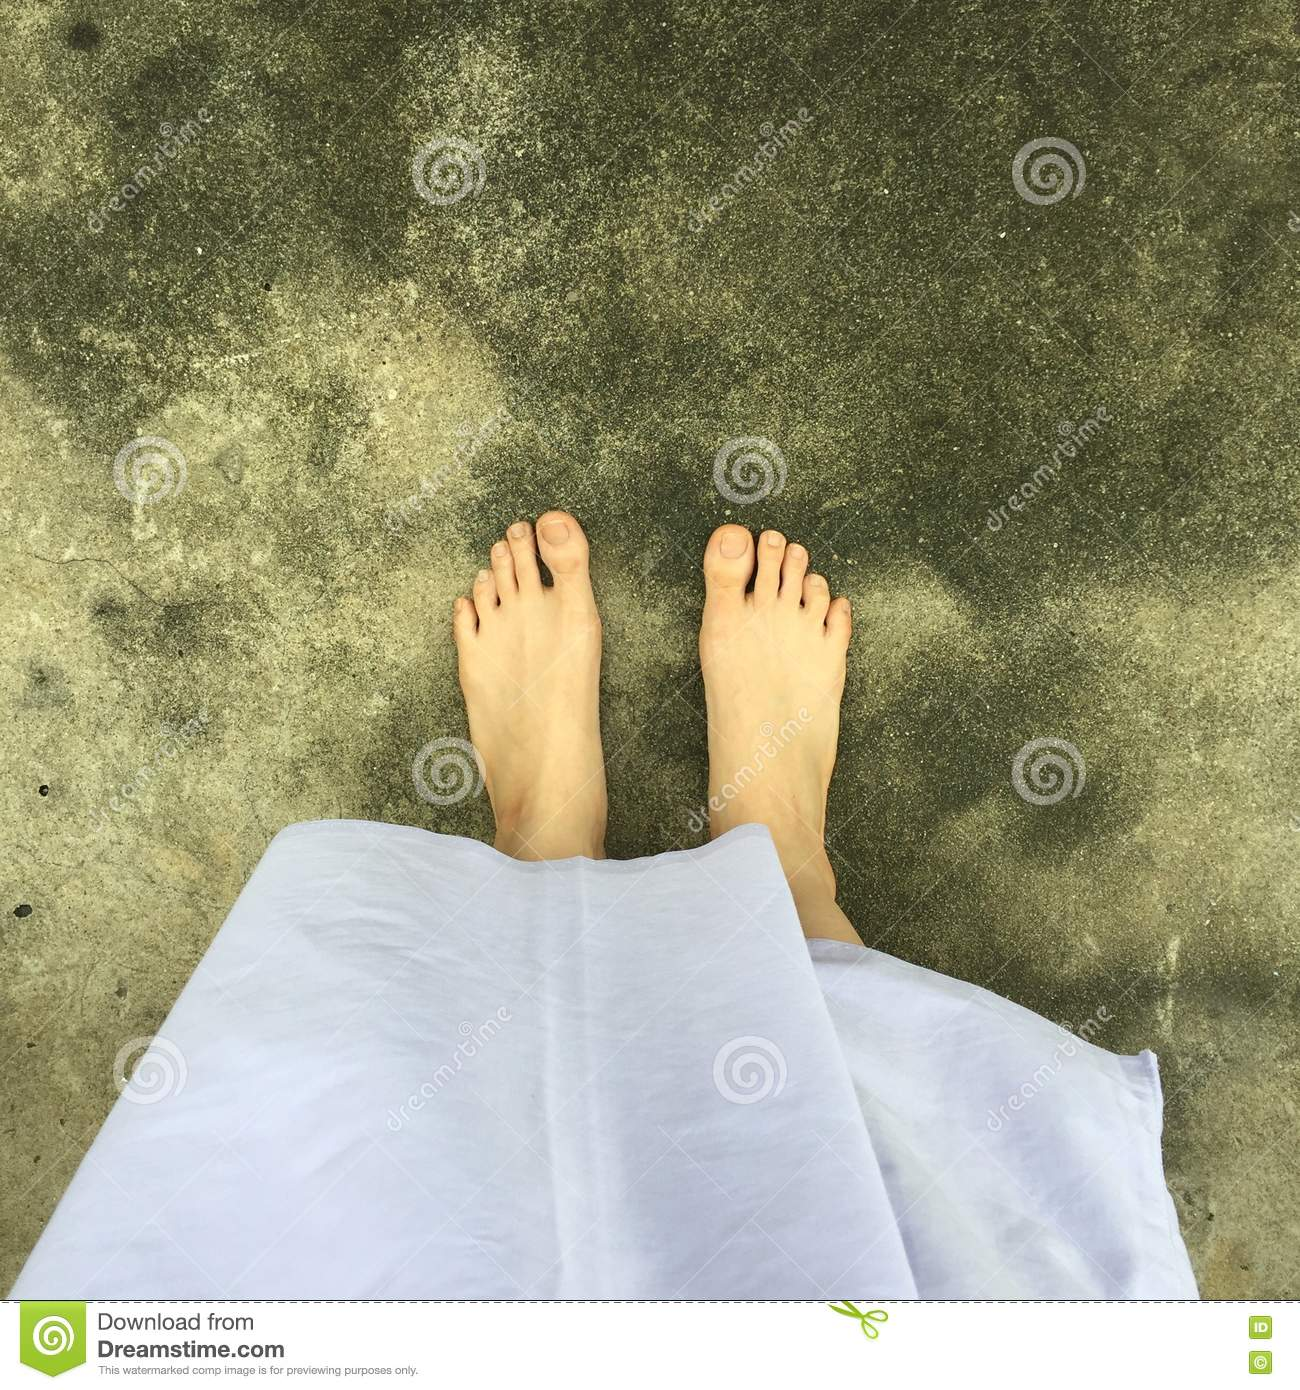 Using Meditation To Help Close >> Close Up Of A Woman S Feet Walking On Street Or Ground For